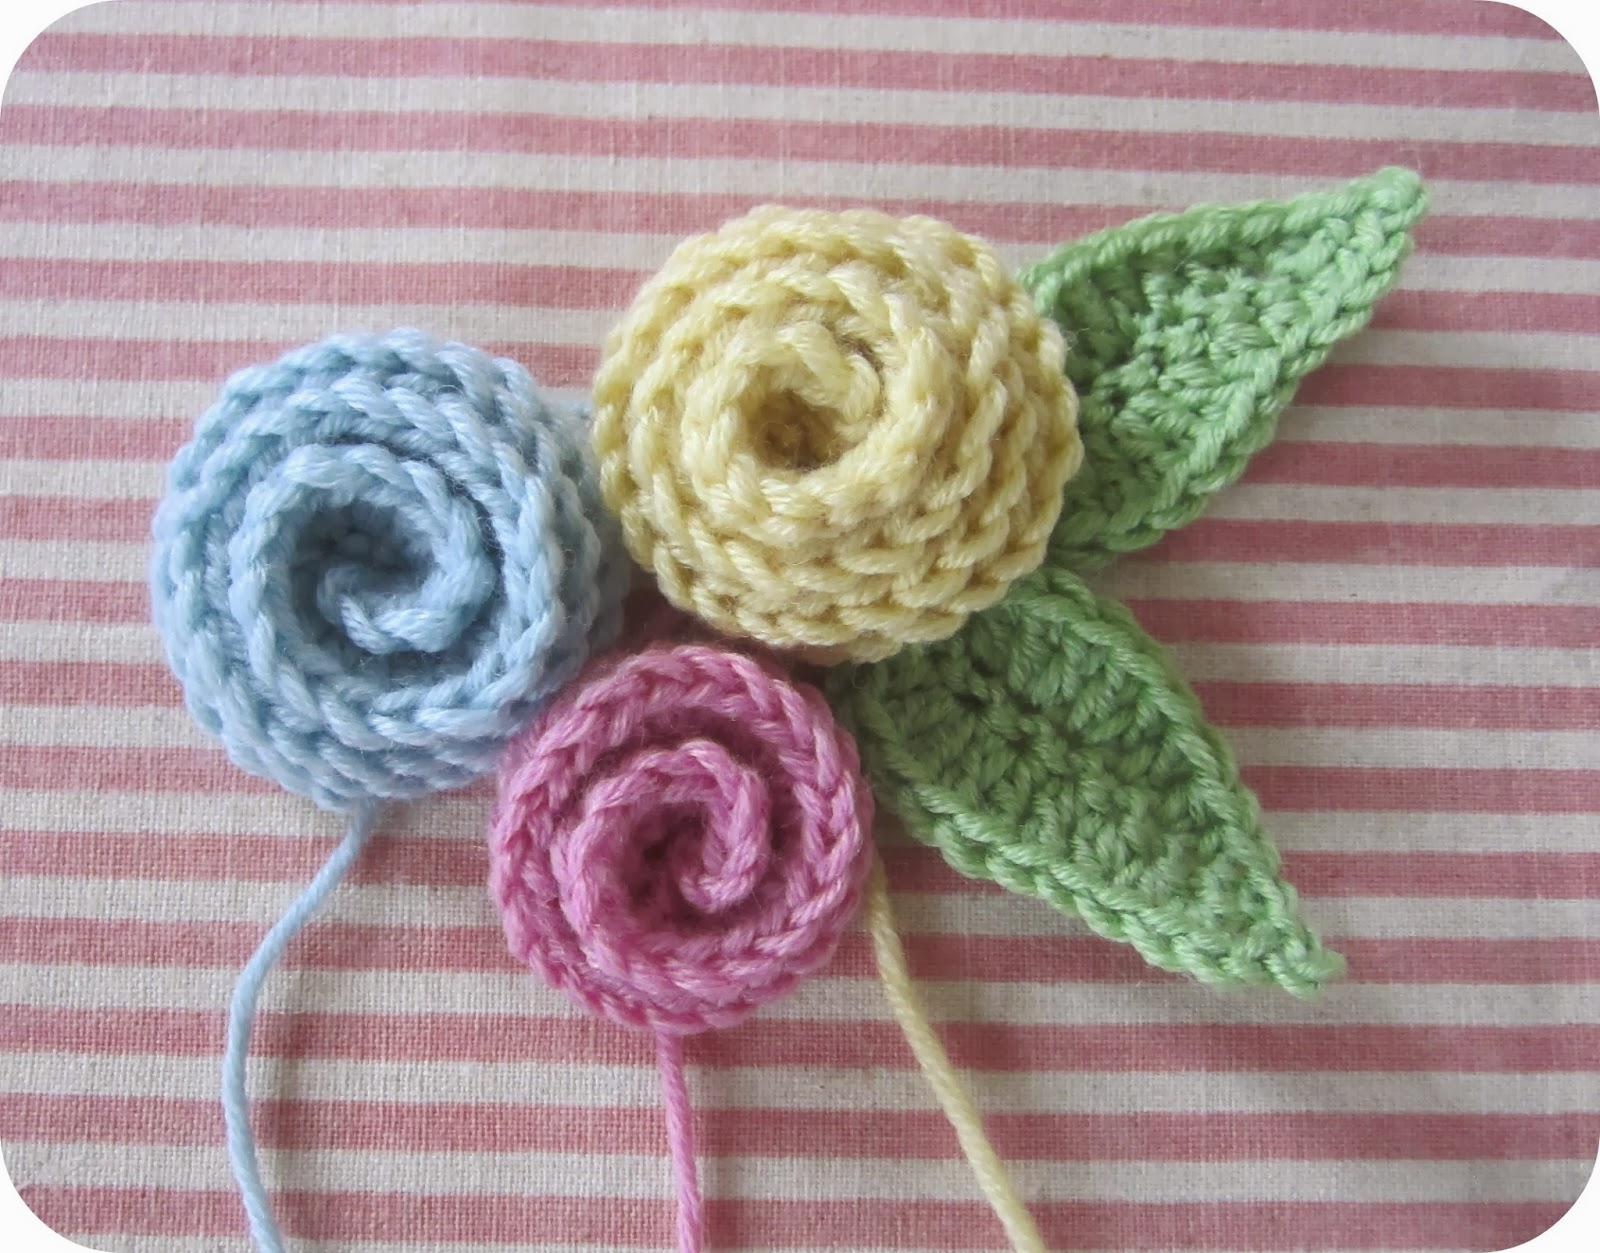 Crochet Rose Pattern : Arent they pretty? So easy peasy lemon squeezy too.